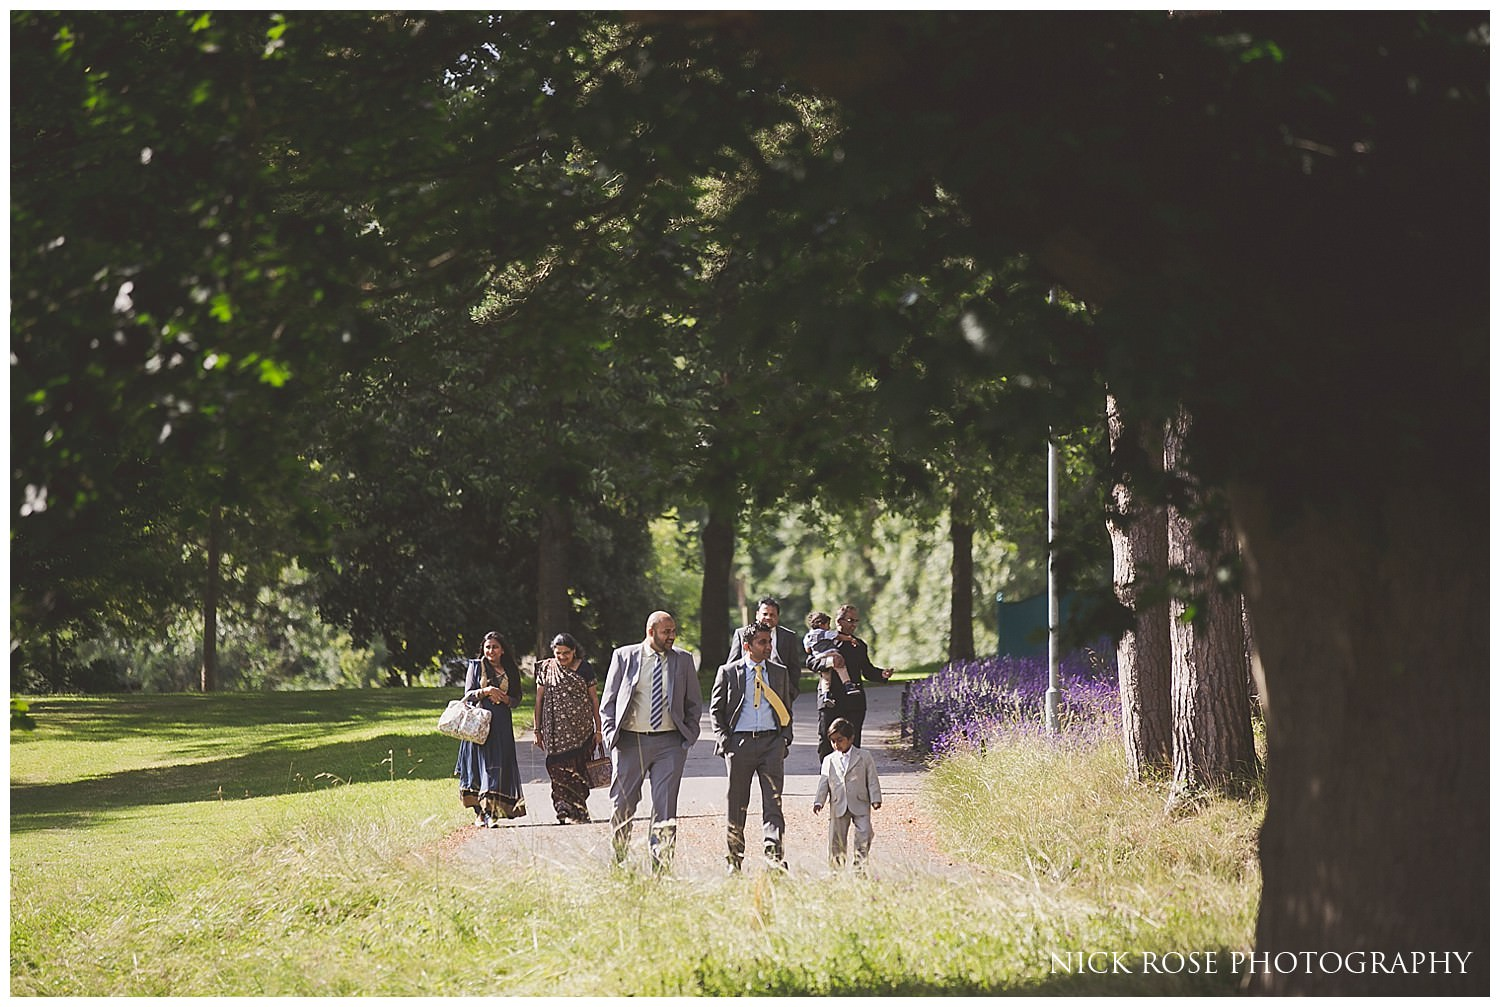 Guests arriving for a civil wedding at Hever Castle in Kent